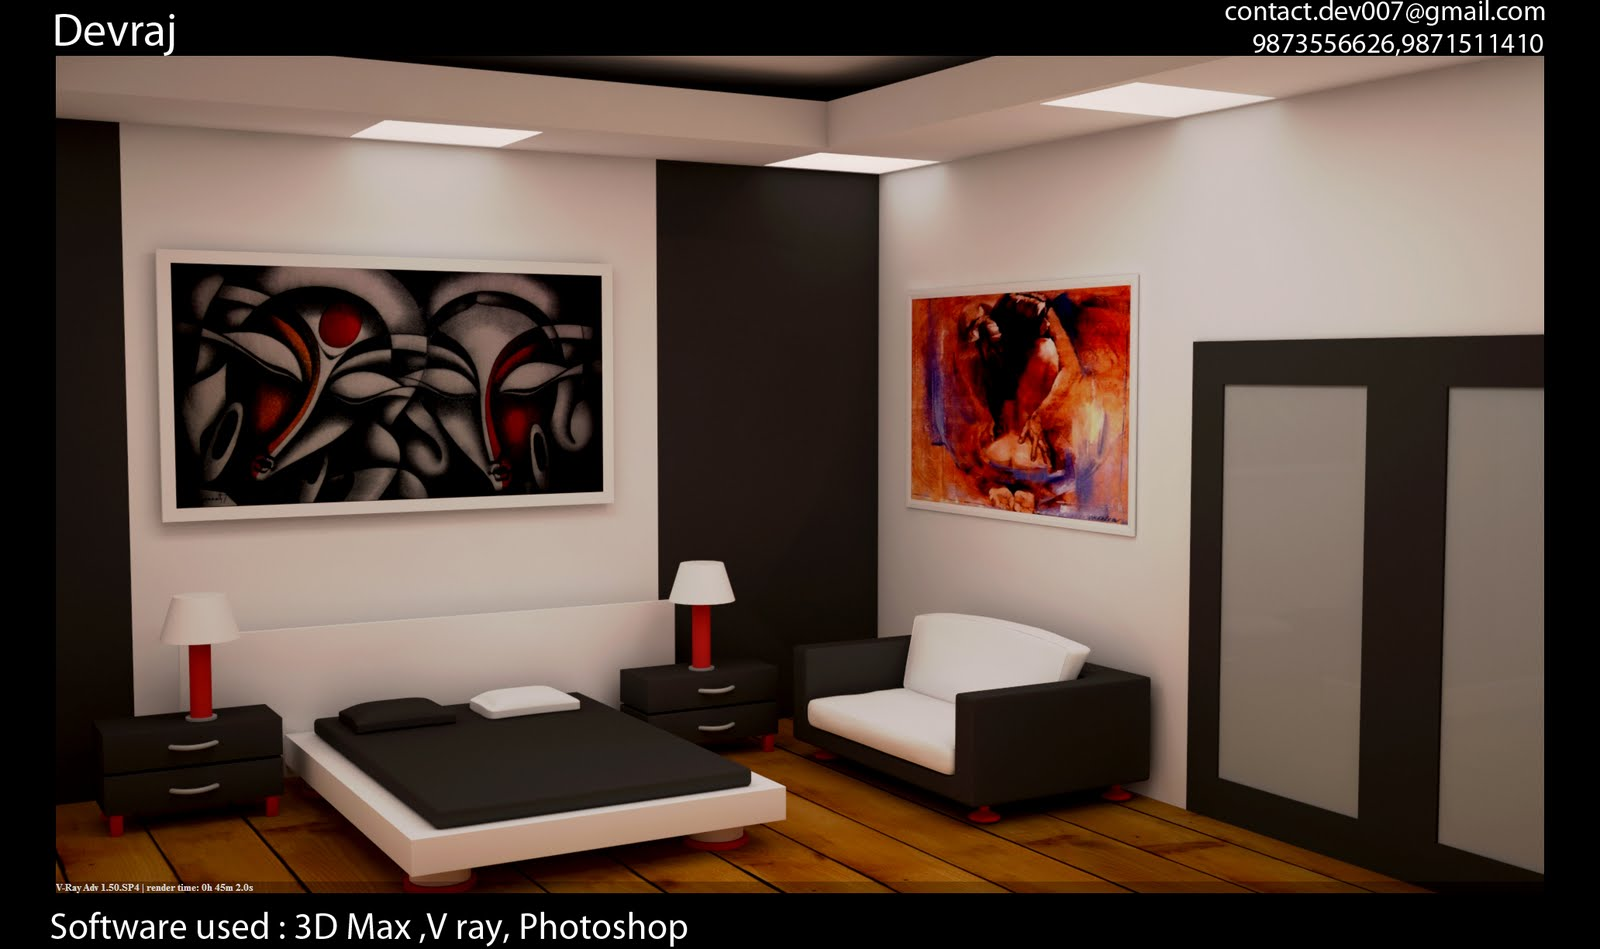 Magnificent Devraj 3d designer interior architectural rendering 1600 x 949 · 112 kB · jpeg